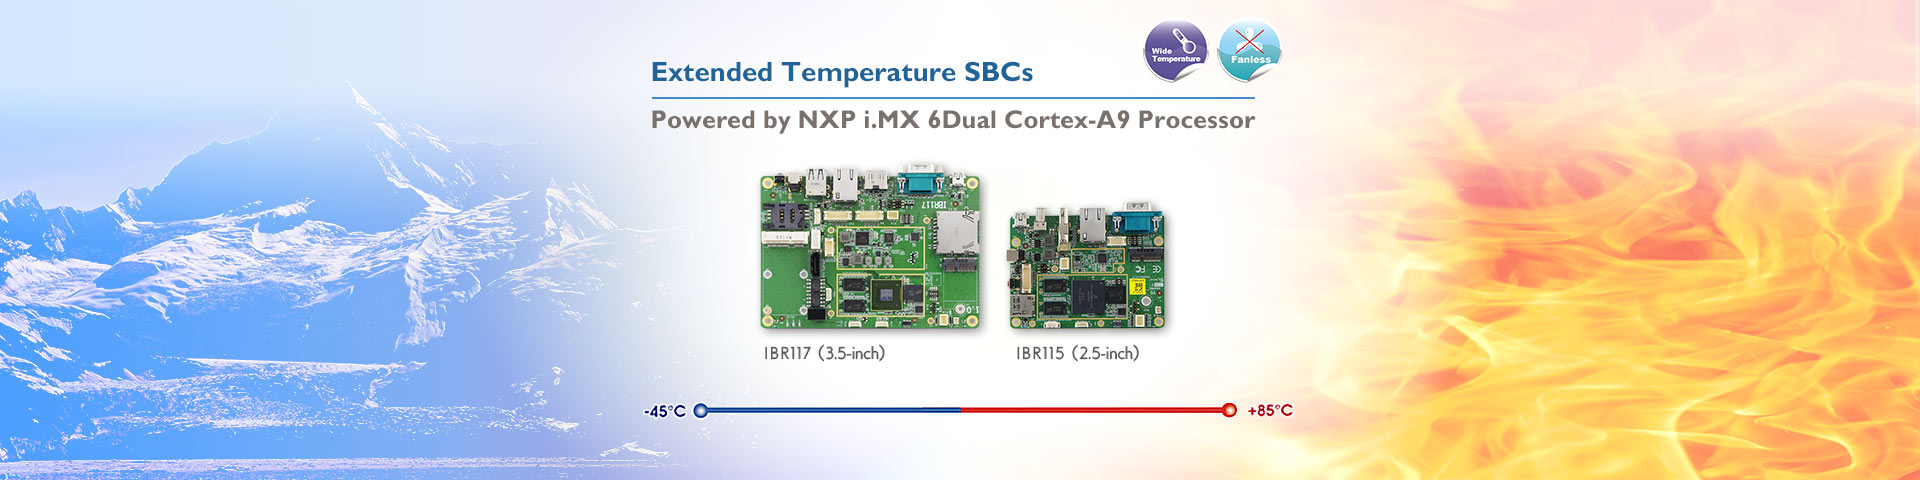 IBR115 and IBR117 Extended Temperature SBCs